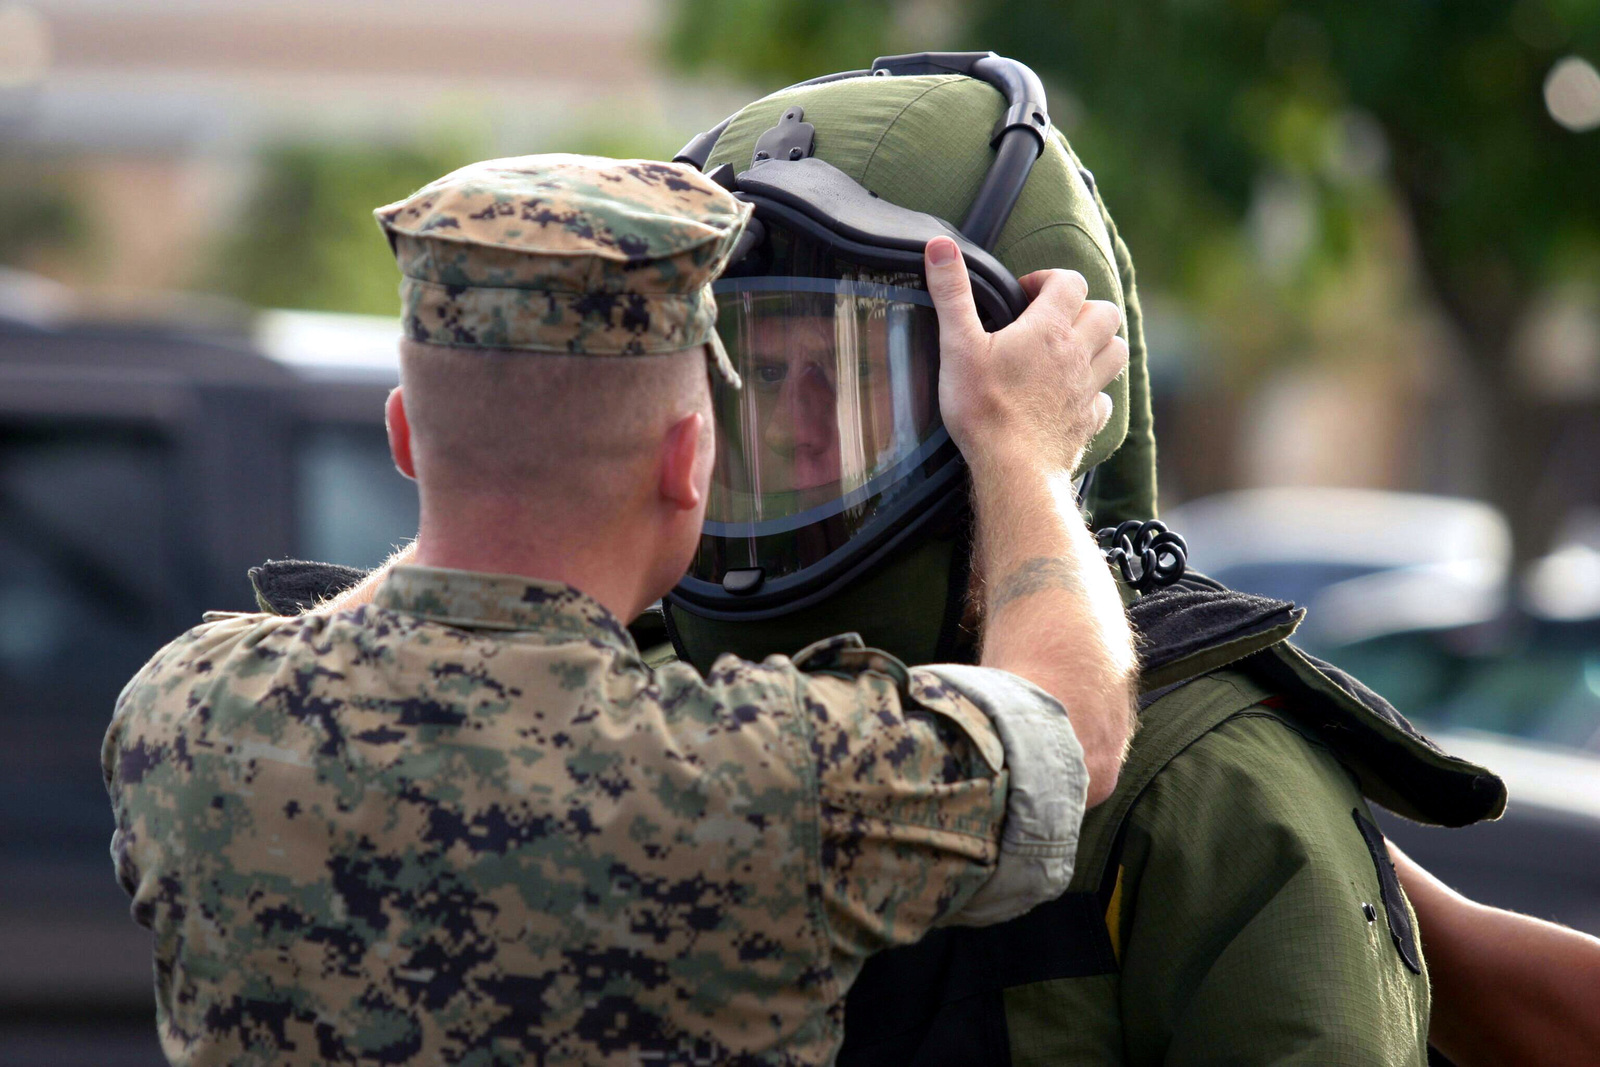 U.S. Marine Corps GUNNERY SGT. Smith helps SGT. Pretz, Explosive Ordnance Disposal SPECIALIST, Combat Service Support Group-3, attach a shield to his bomb suit while conducting training at the Marine Corps Base Hawaii, Hawaii, Post Exchange parking lot on Dec. 9, 2004.(U.S. Marine Corps official photo by CPL. Nicholas Riddle) (Released)